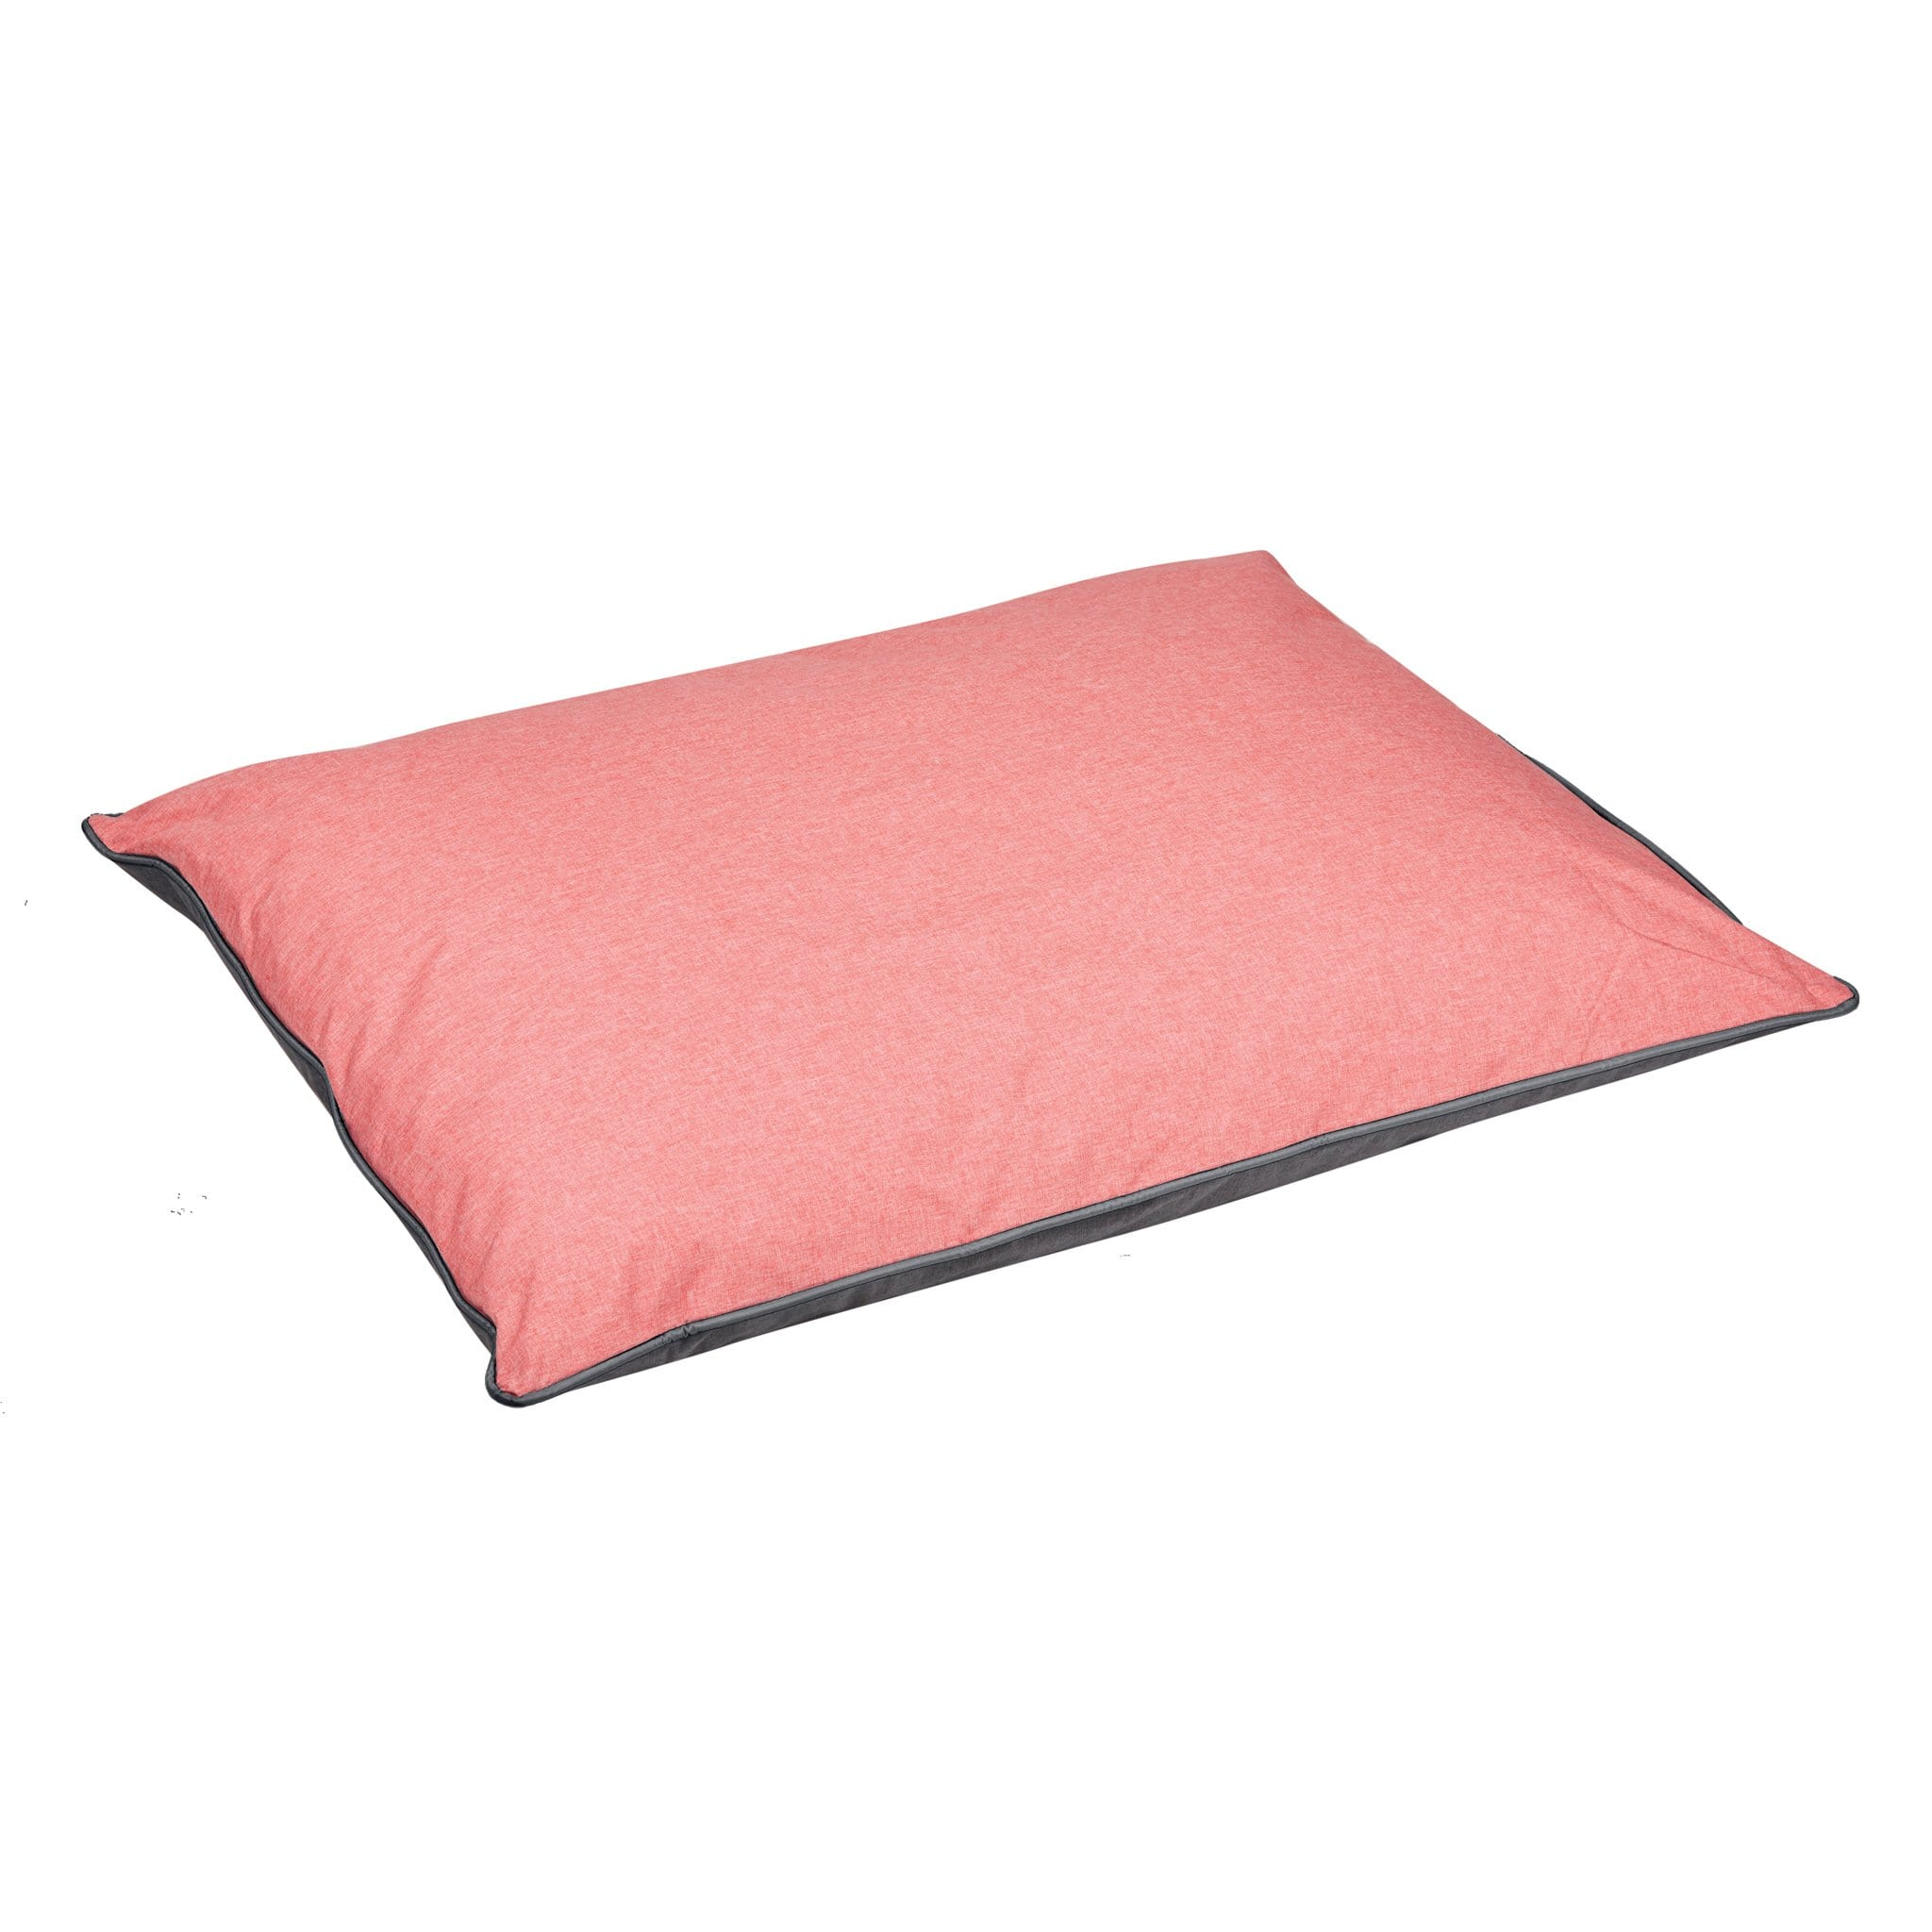 Weatherbeeta Waterproof Pillow Dog Bed 1001707001 Pink and Grey